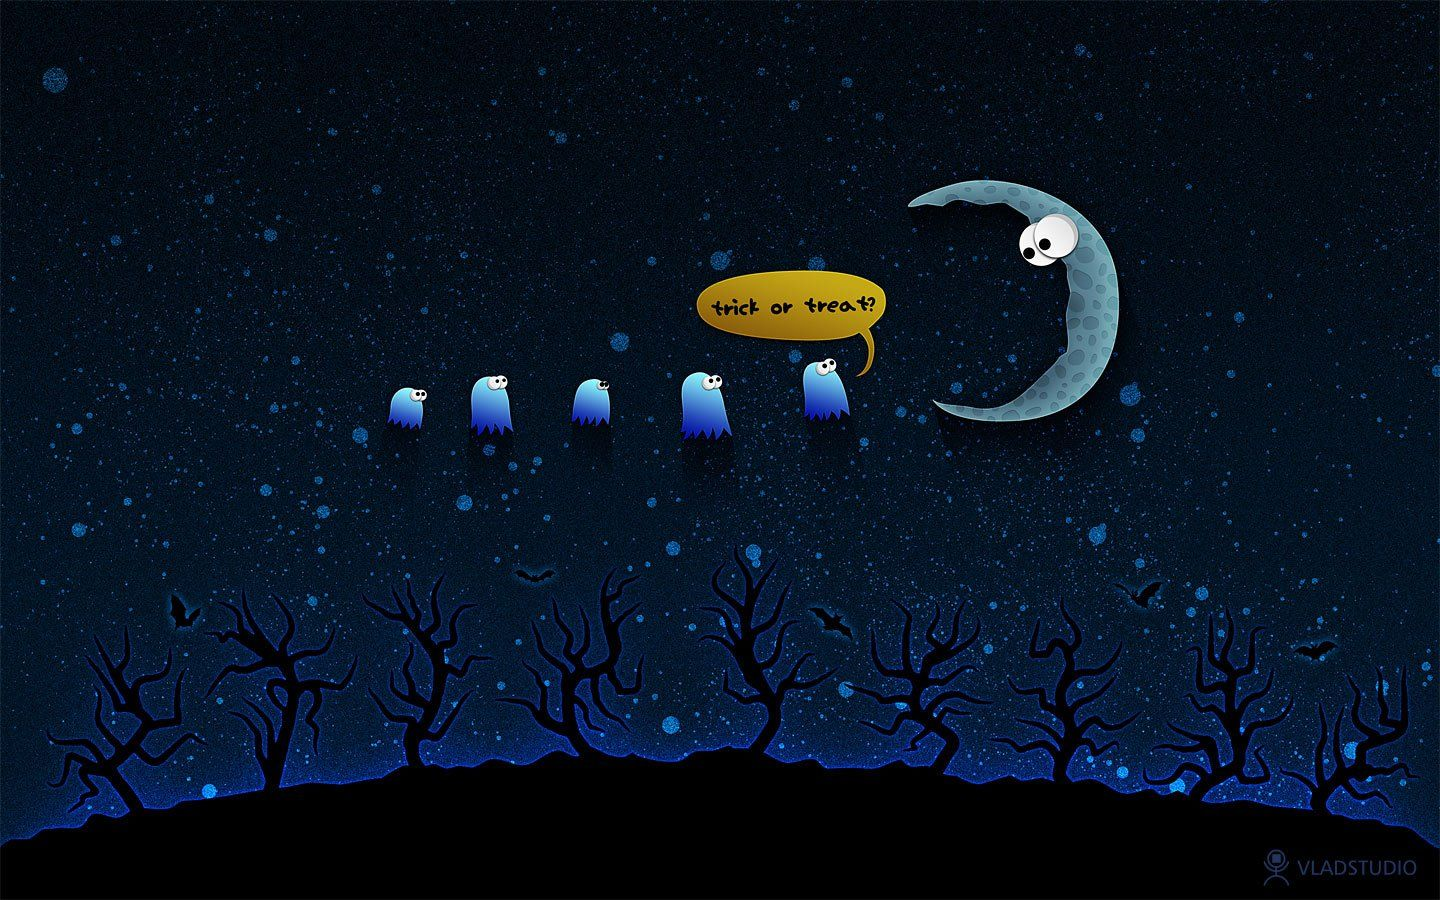 Really Funny Halloween | Very Funny Halloween   HD Wallpapers Widescreen    1440x900 Amazing Design